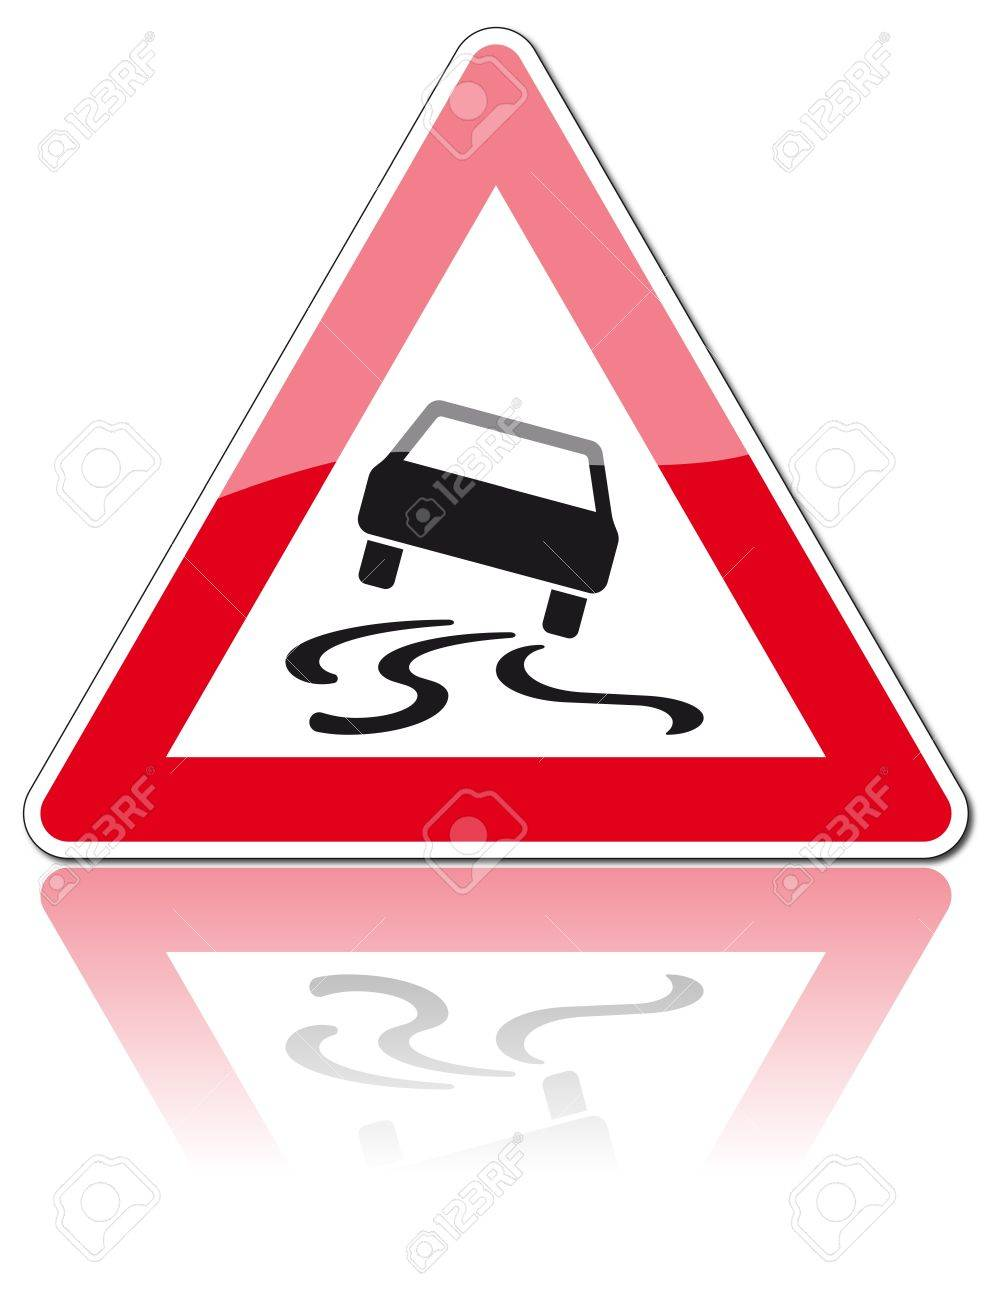 traffic signs Stock Vector - 10648044